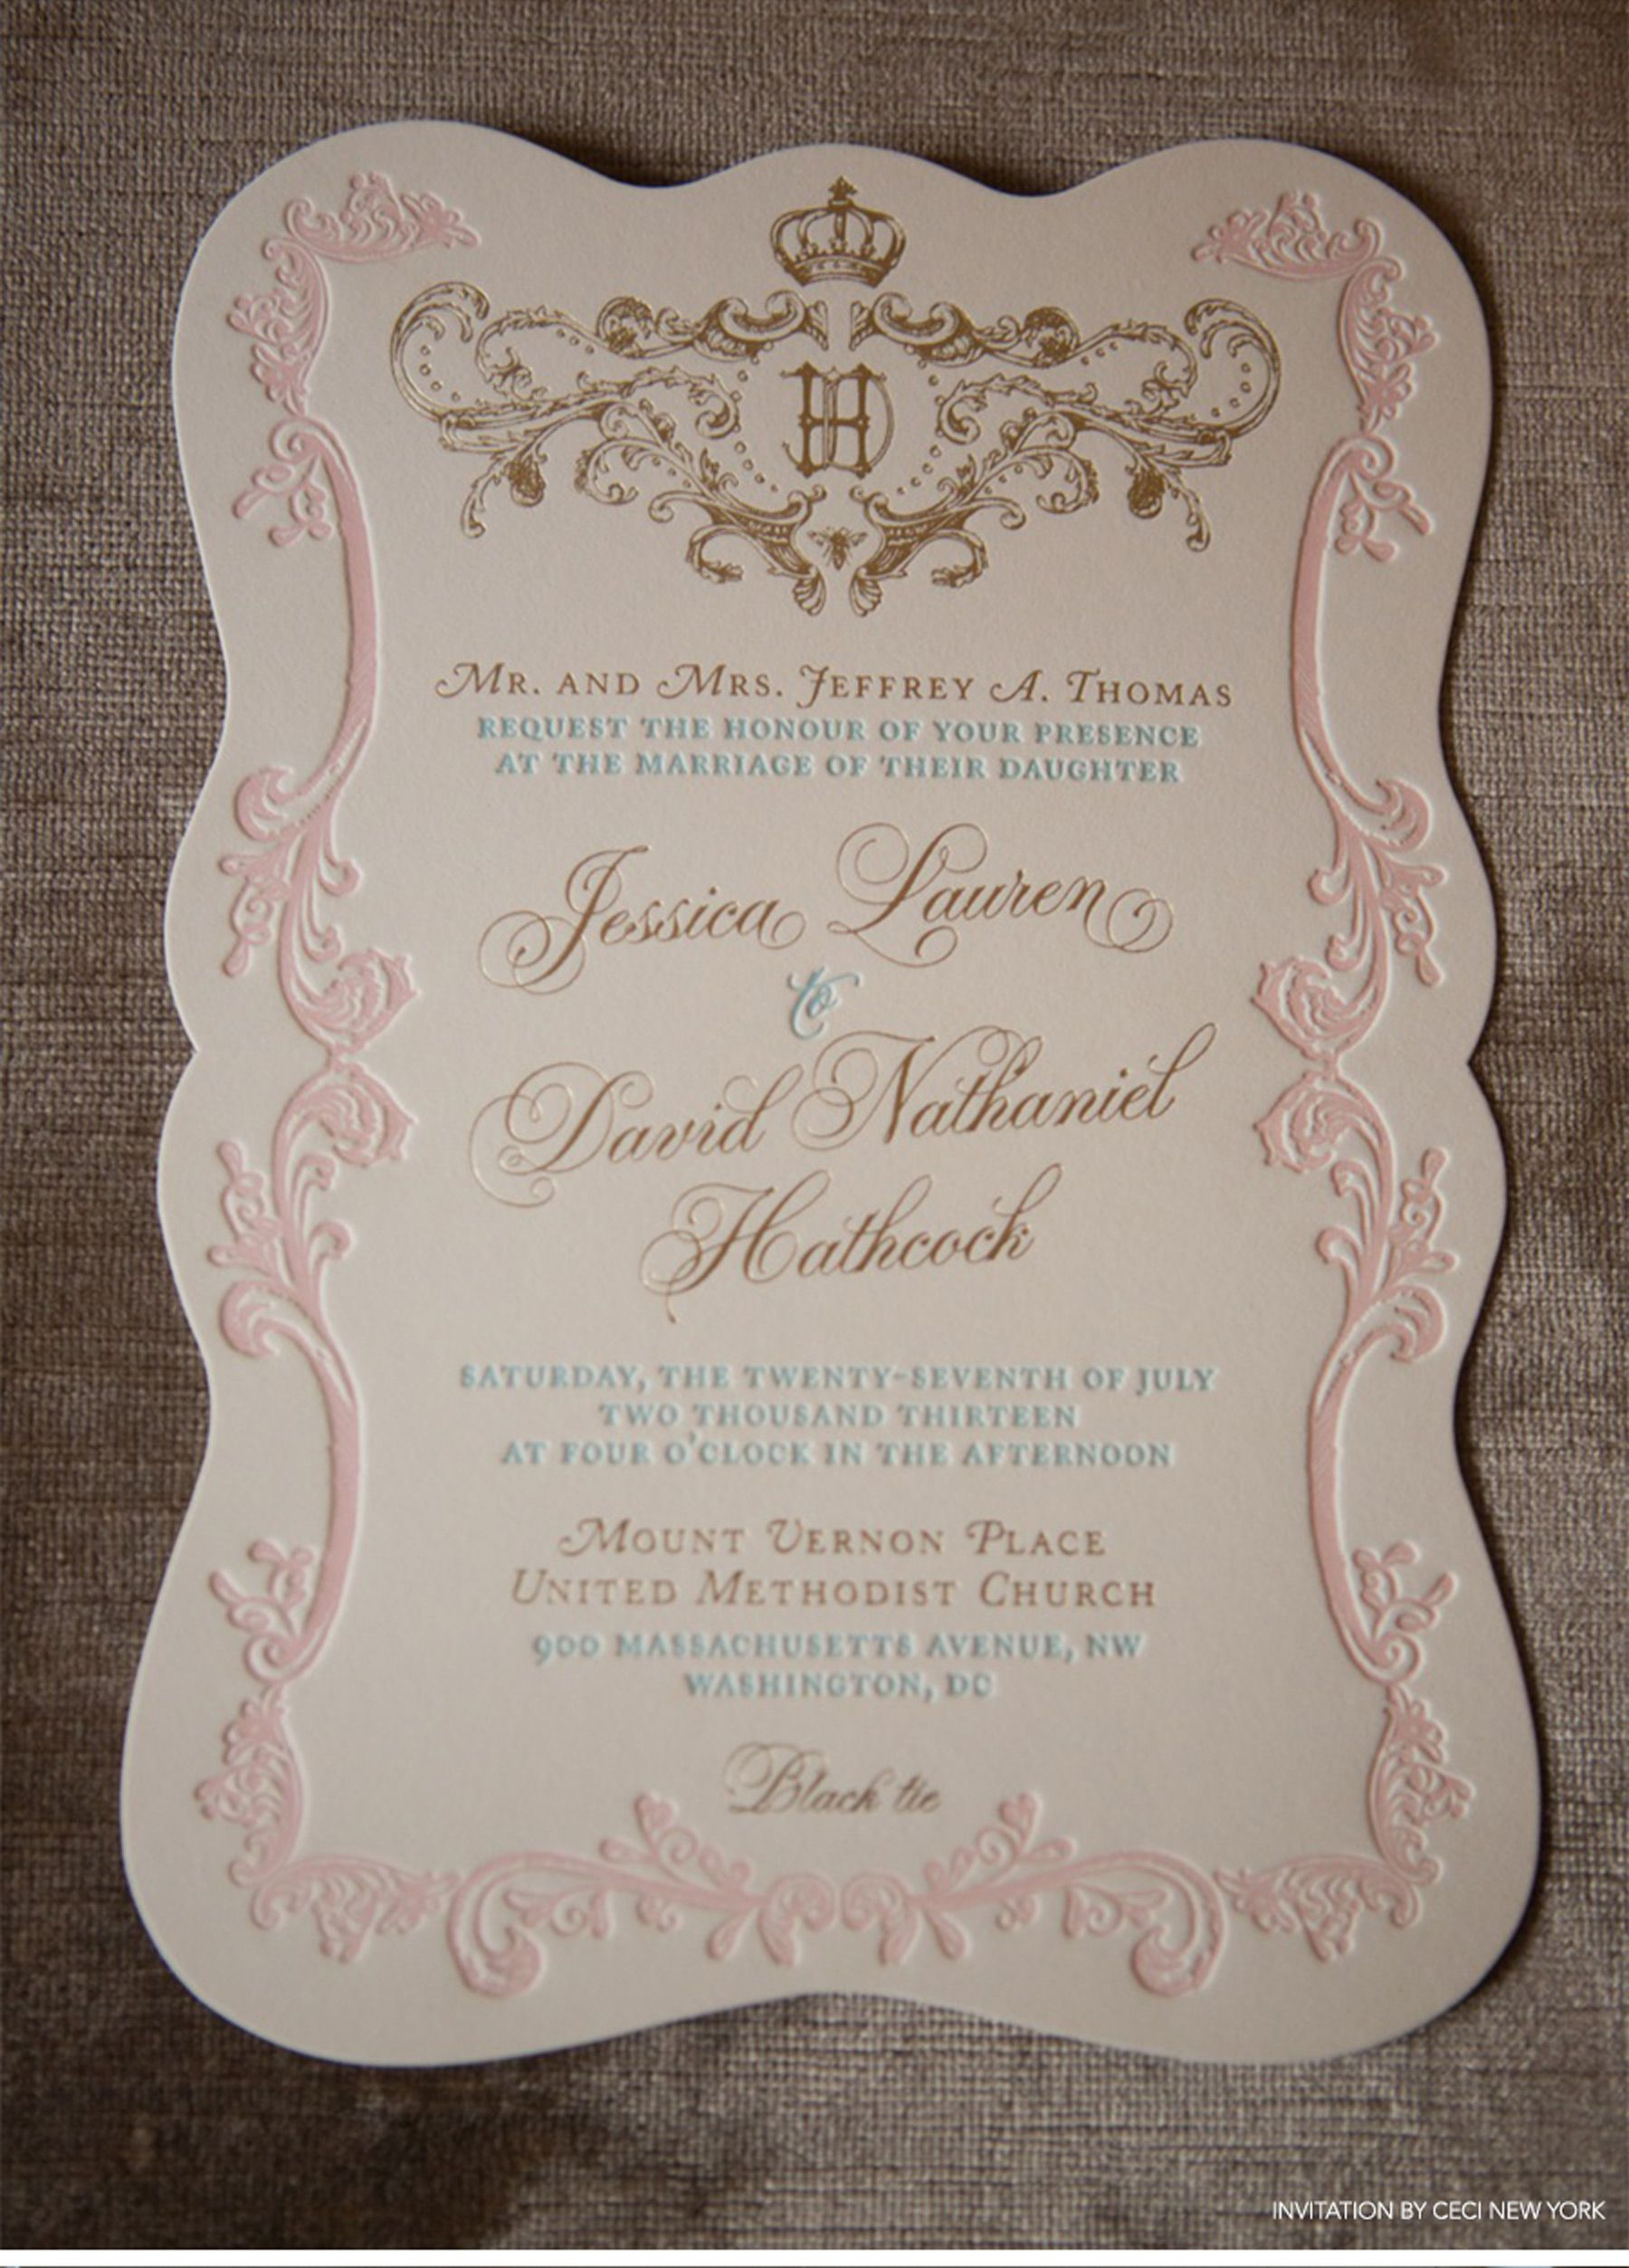 Regal French Inspired Wedding Monogram In Shades Of Gold And Sweet Pastels Ceci New York